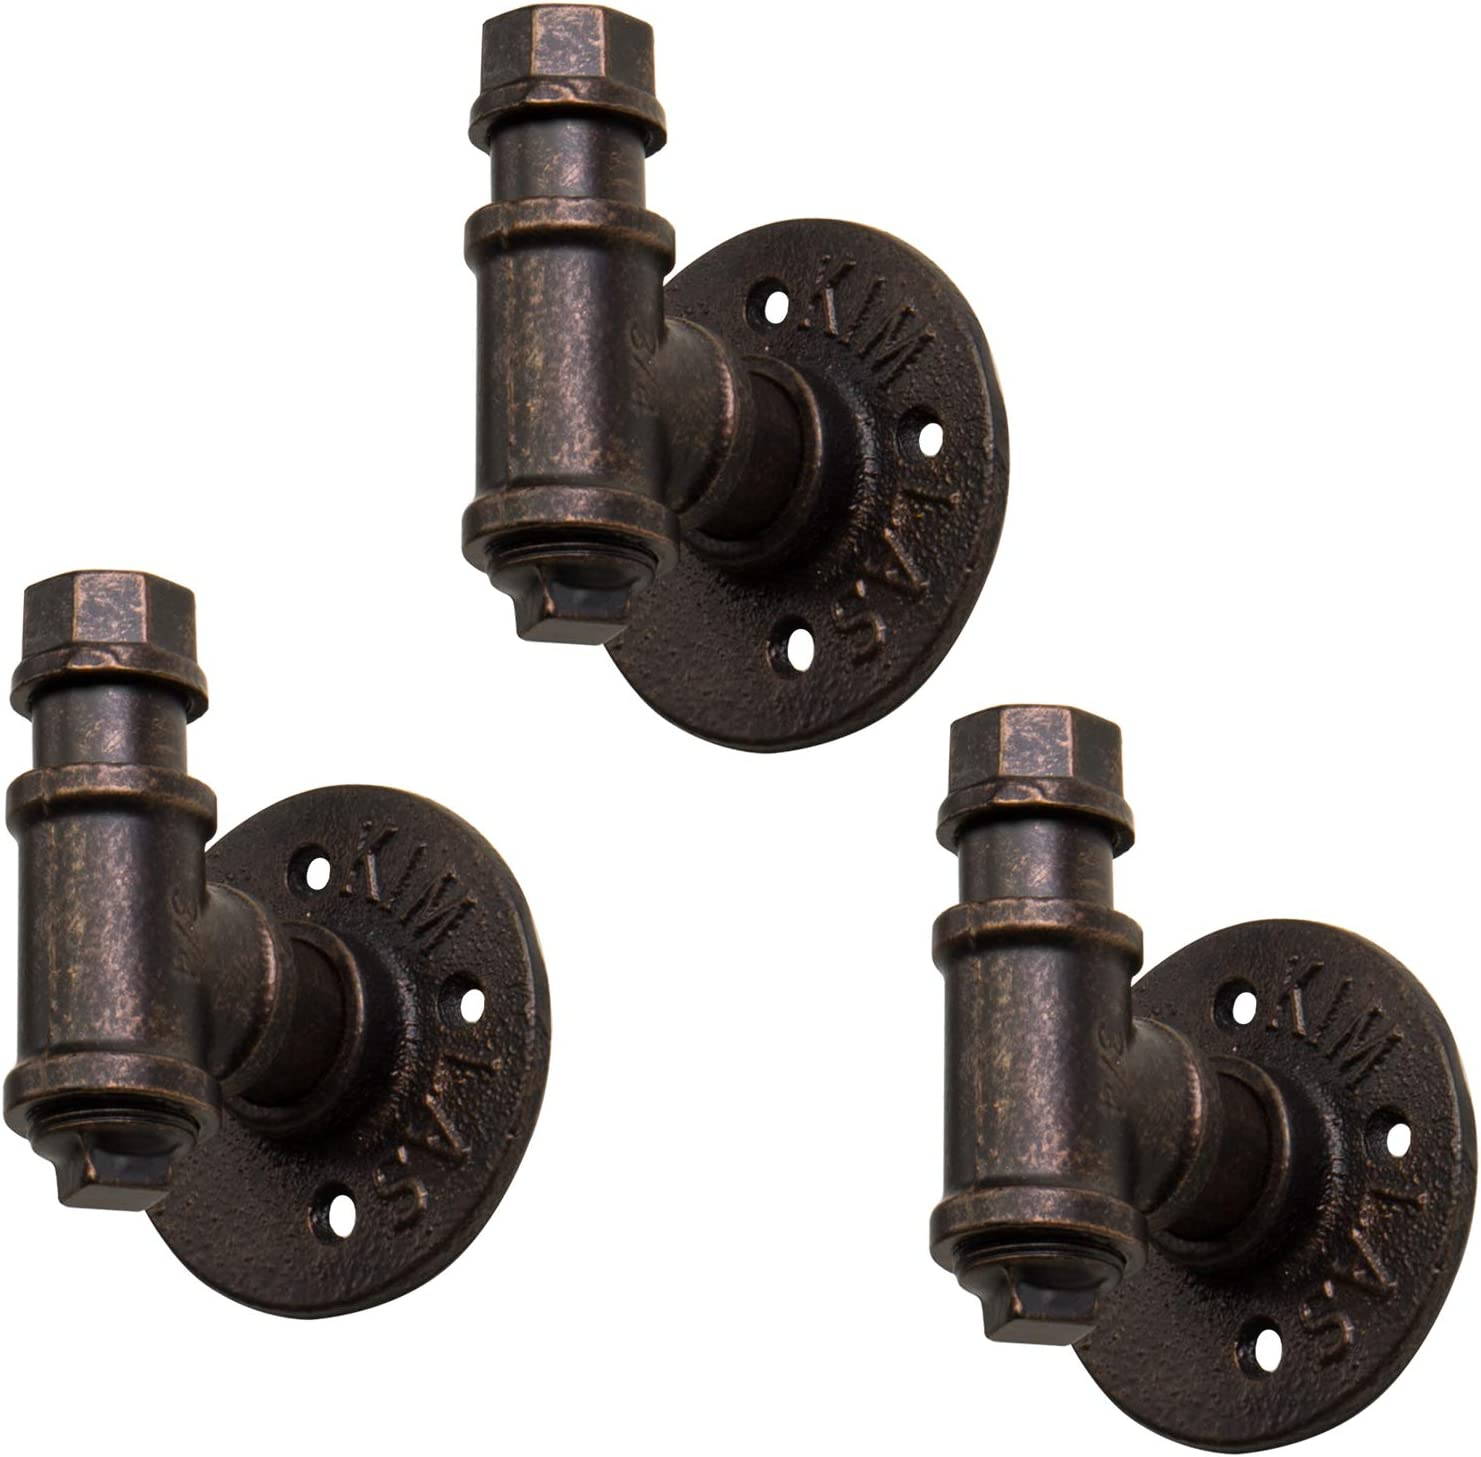 MyGift Industrial Rustic Copper-Tone Metal Pipe Design Wall Hooks, Set of 3